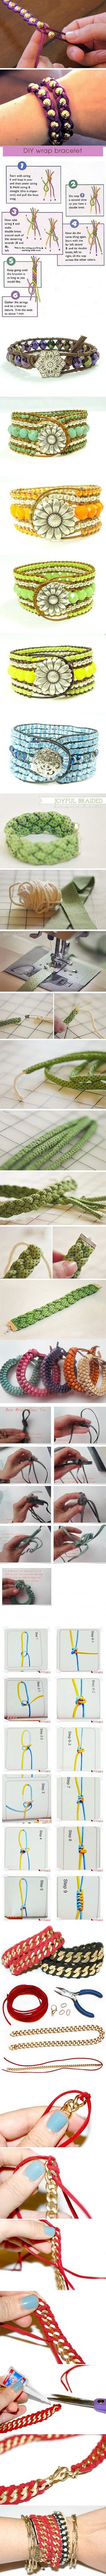 Great DIY jewelry ideas